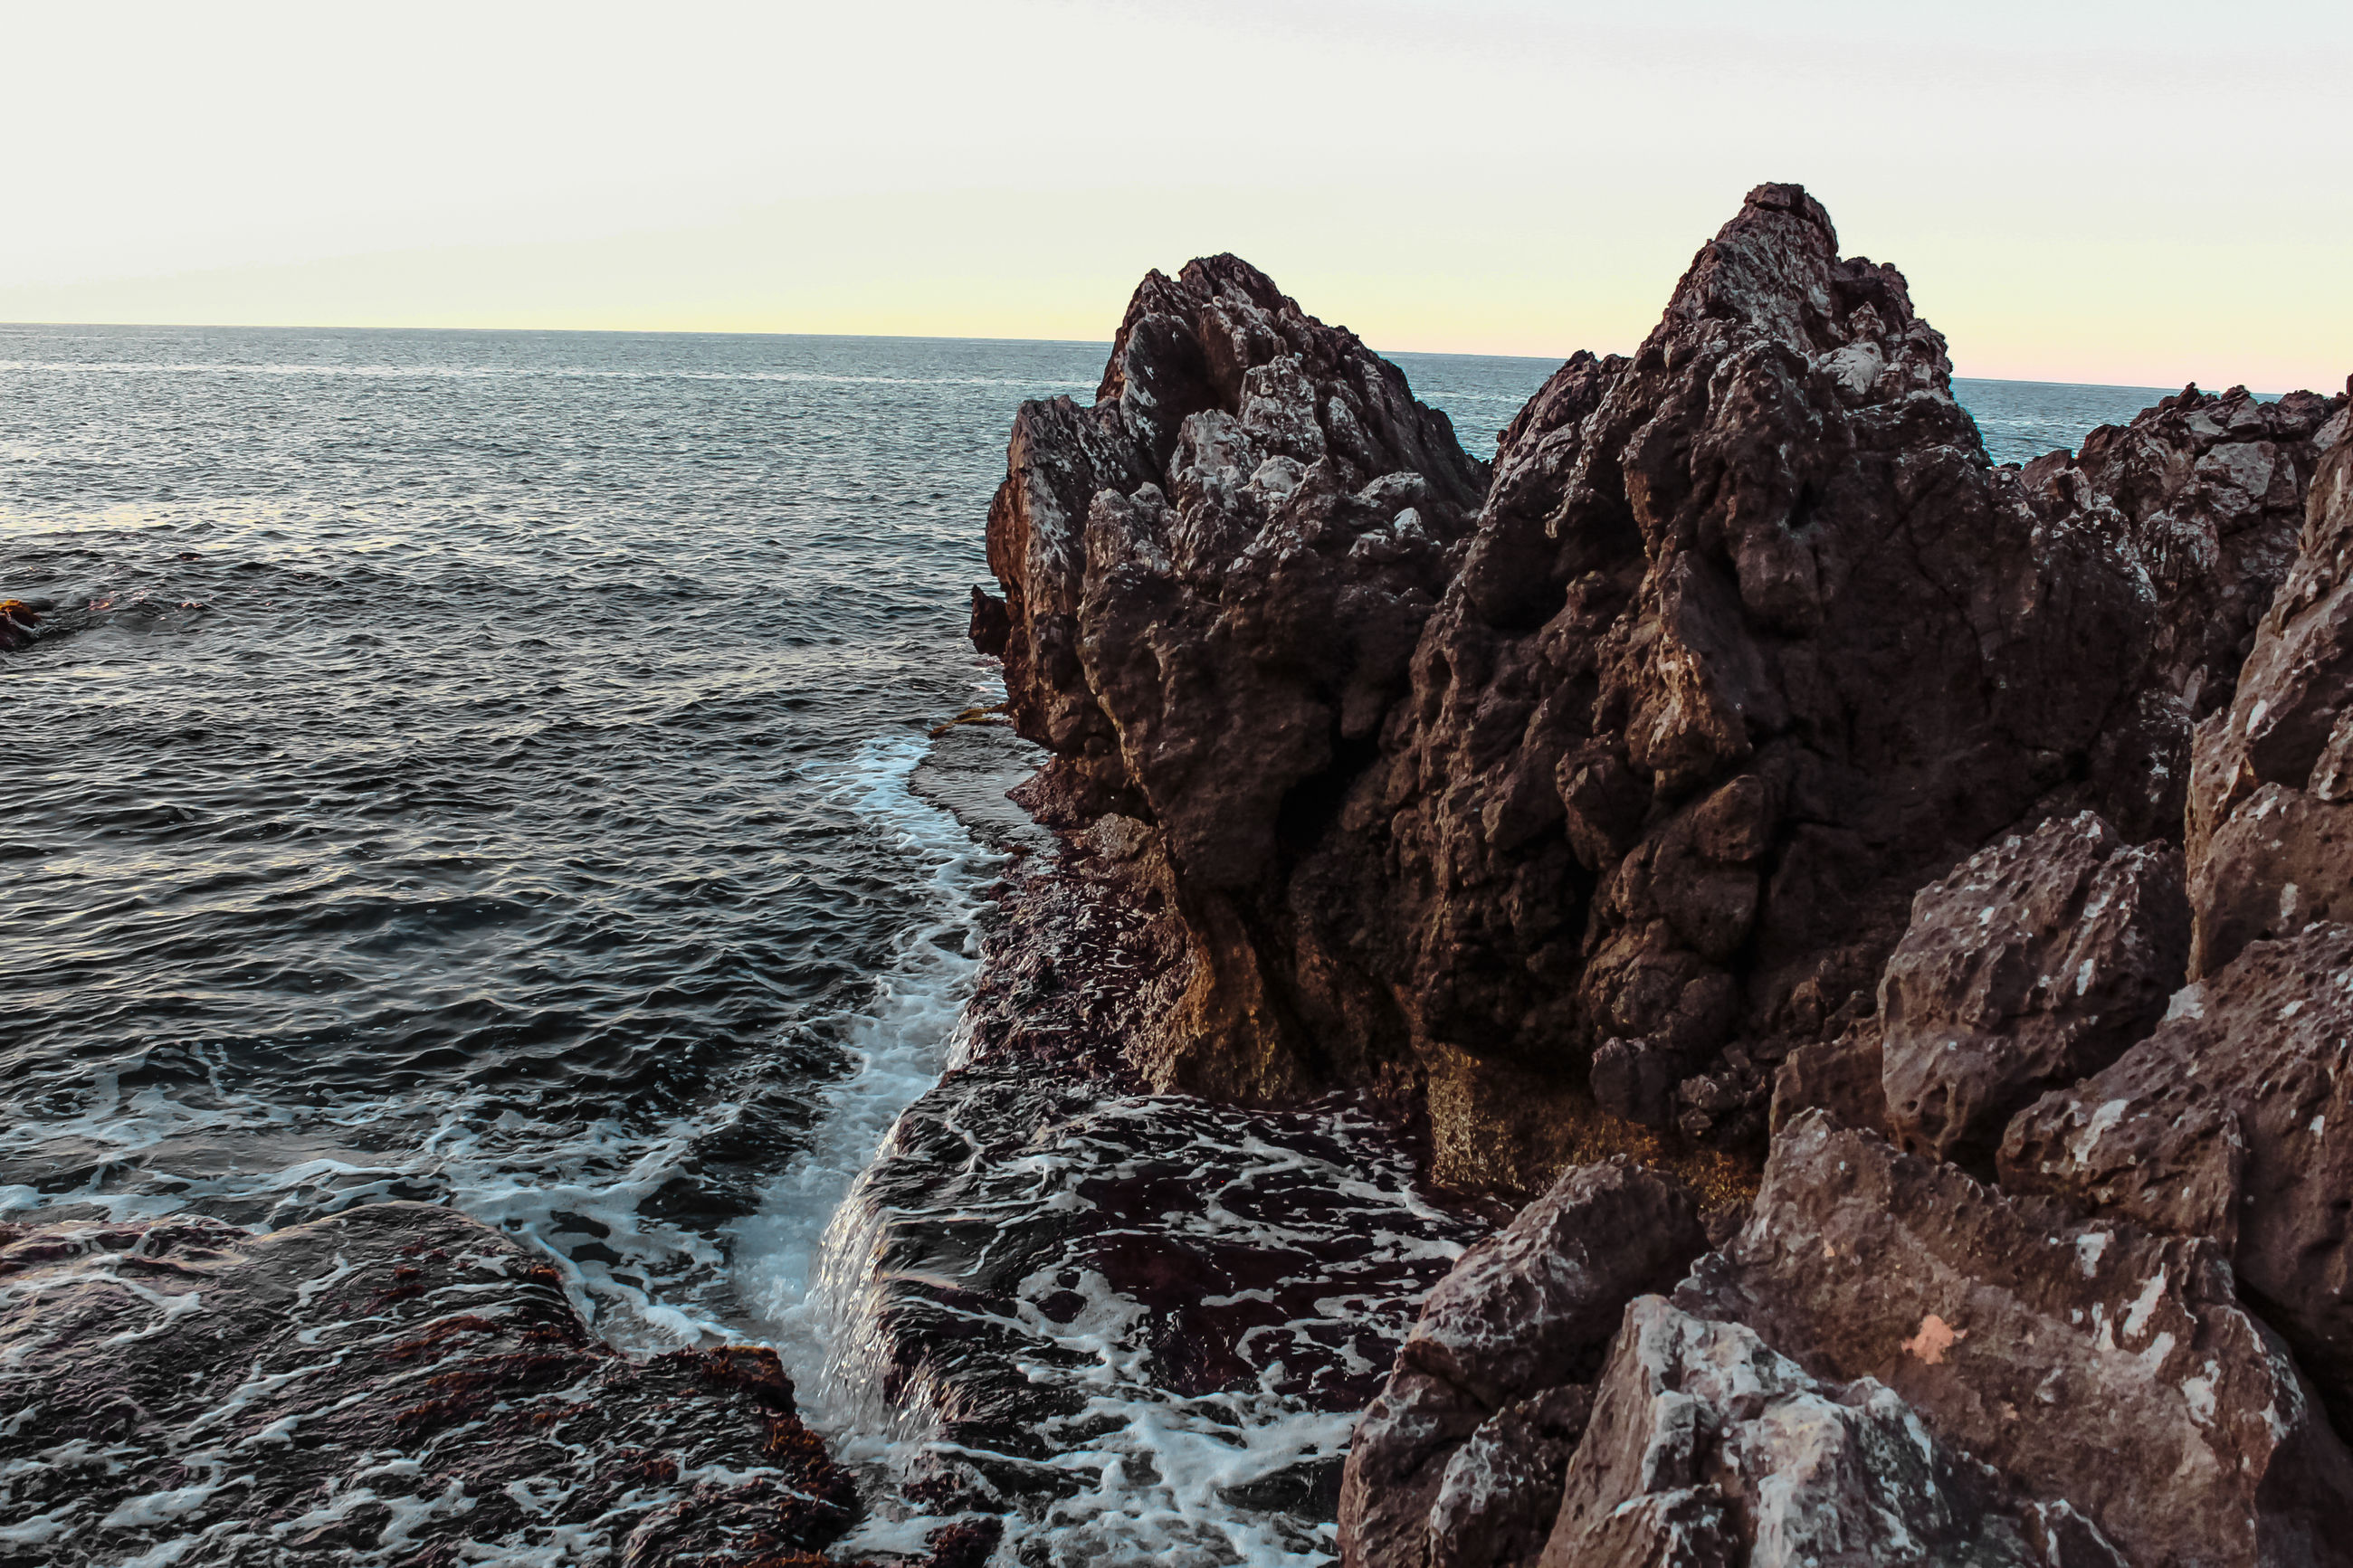 sea, nature, rock - object, beauty in nature, scenics, sky, tranquility, tranquil scene, no people, outdoors, water, horizon over water, day, beach, wave